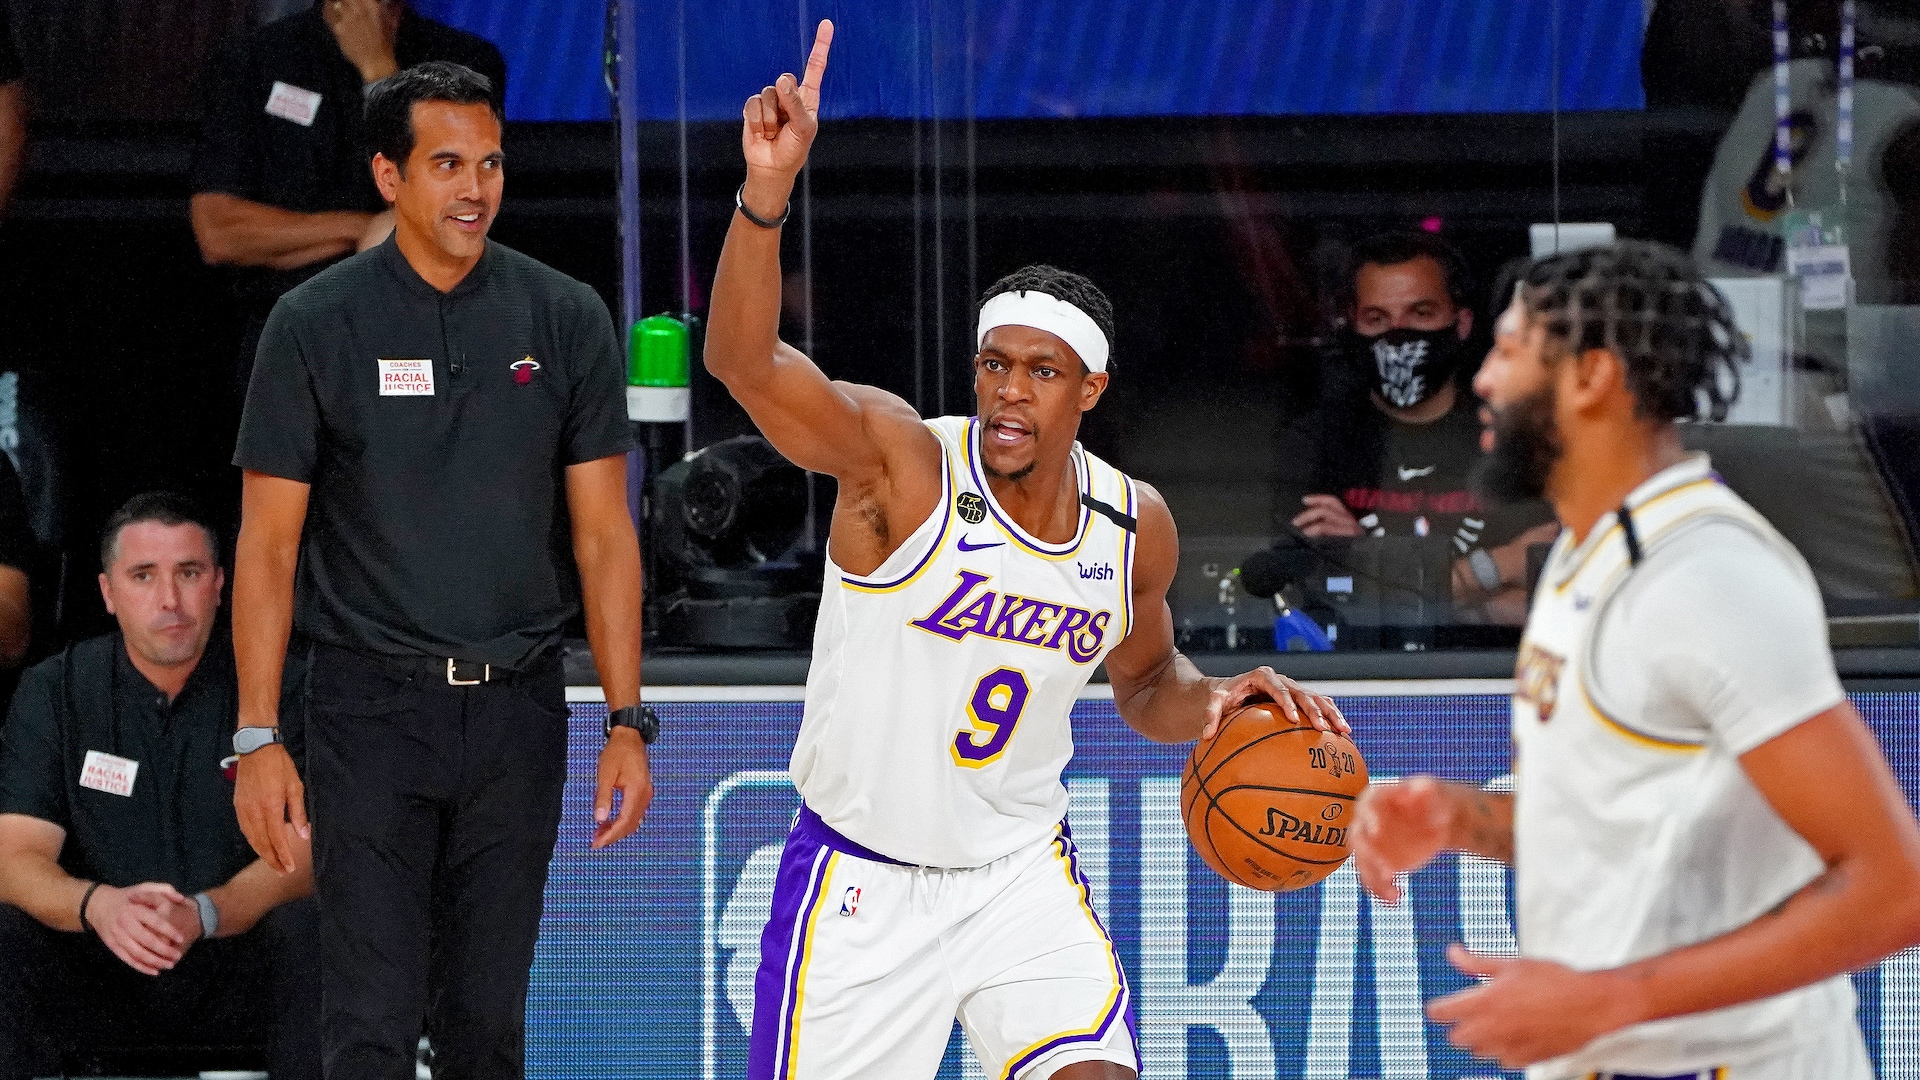 Full circle from quick success in Boston, Rajon Rondo wins title with L.A.